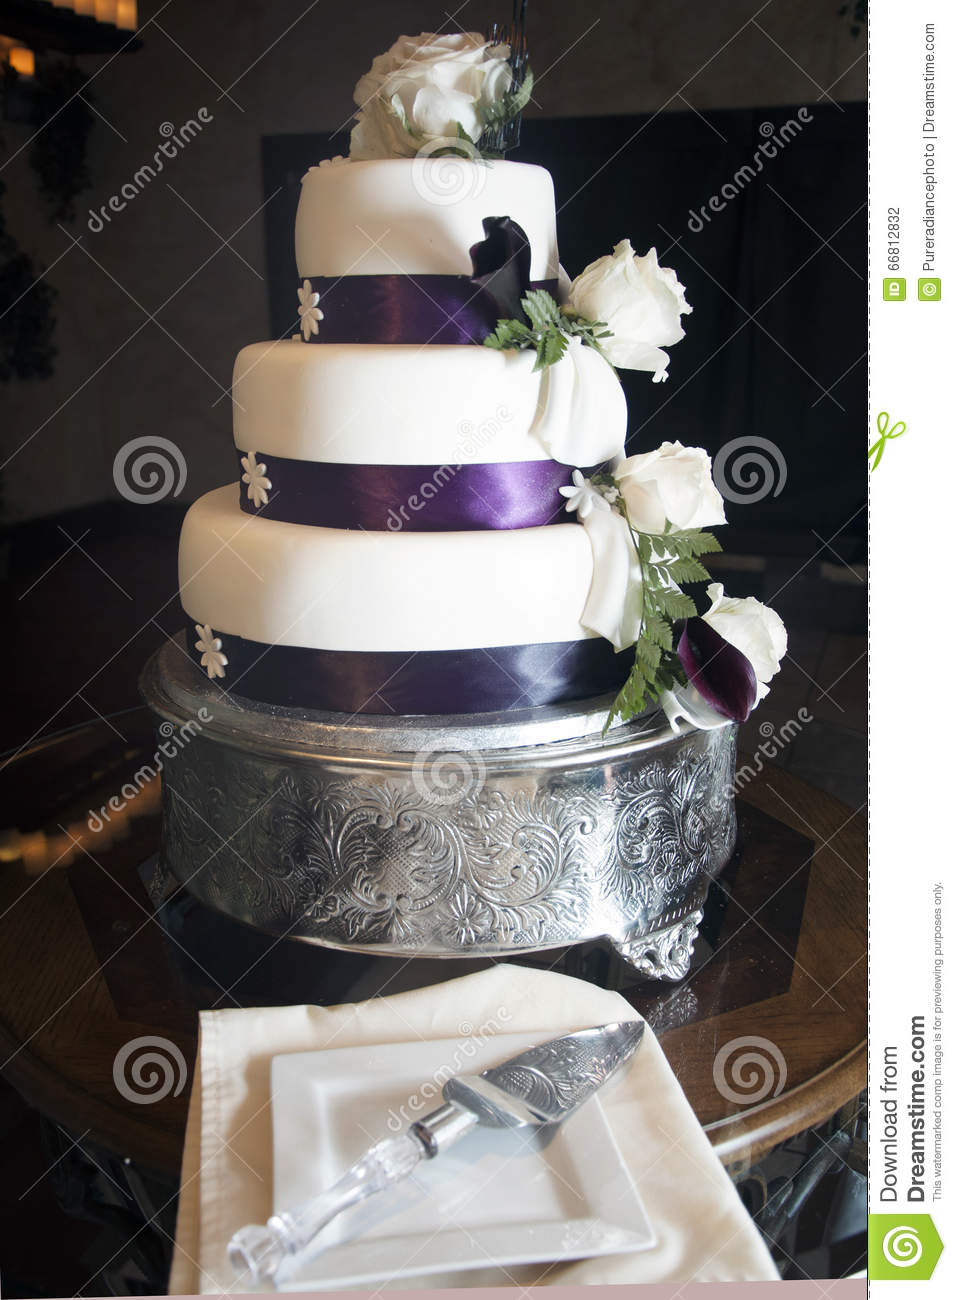 wedding cakes purple and white white fondant cake with pink flowers stock image 25323